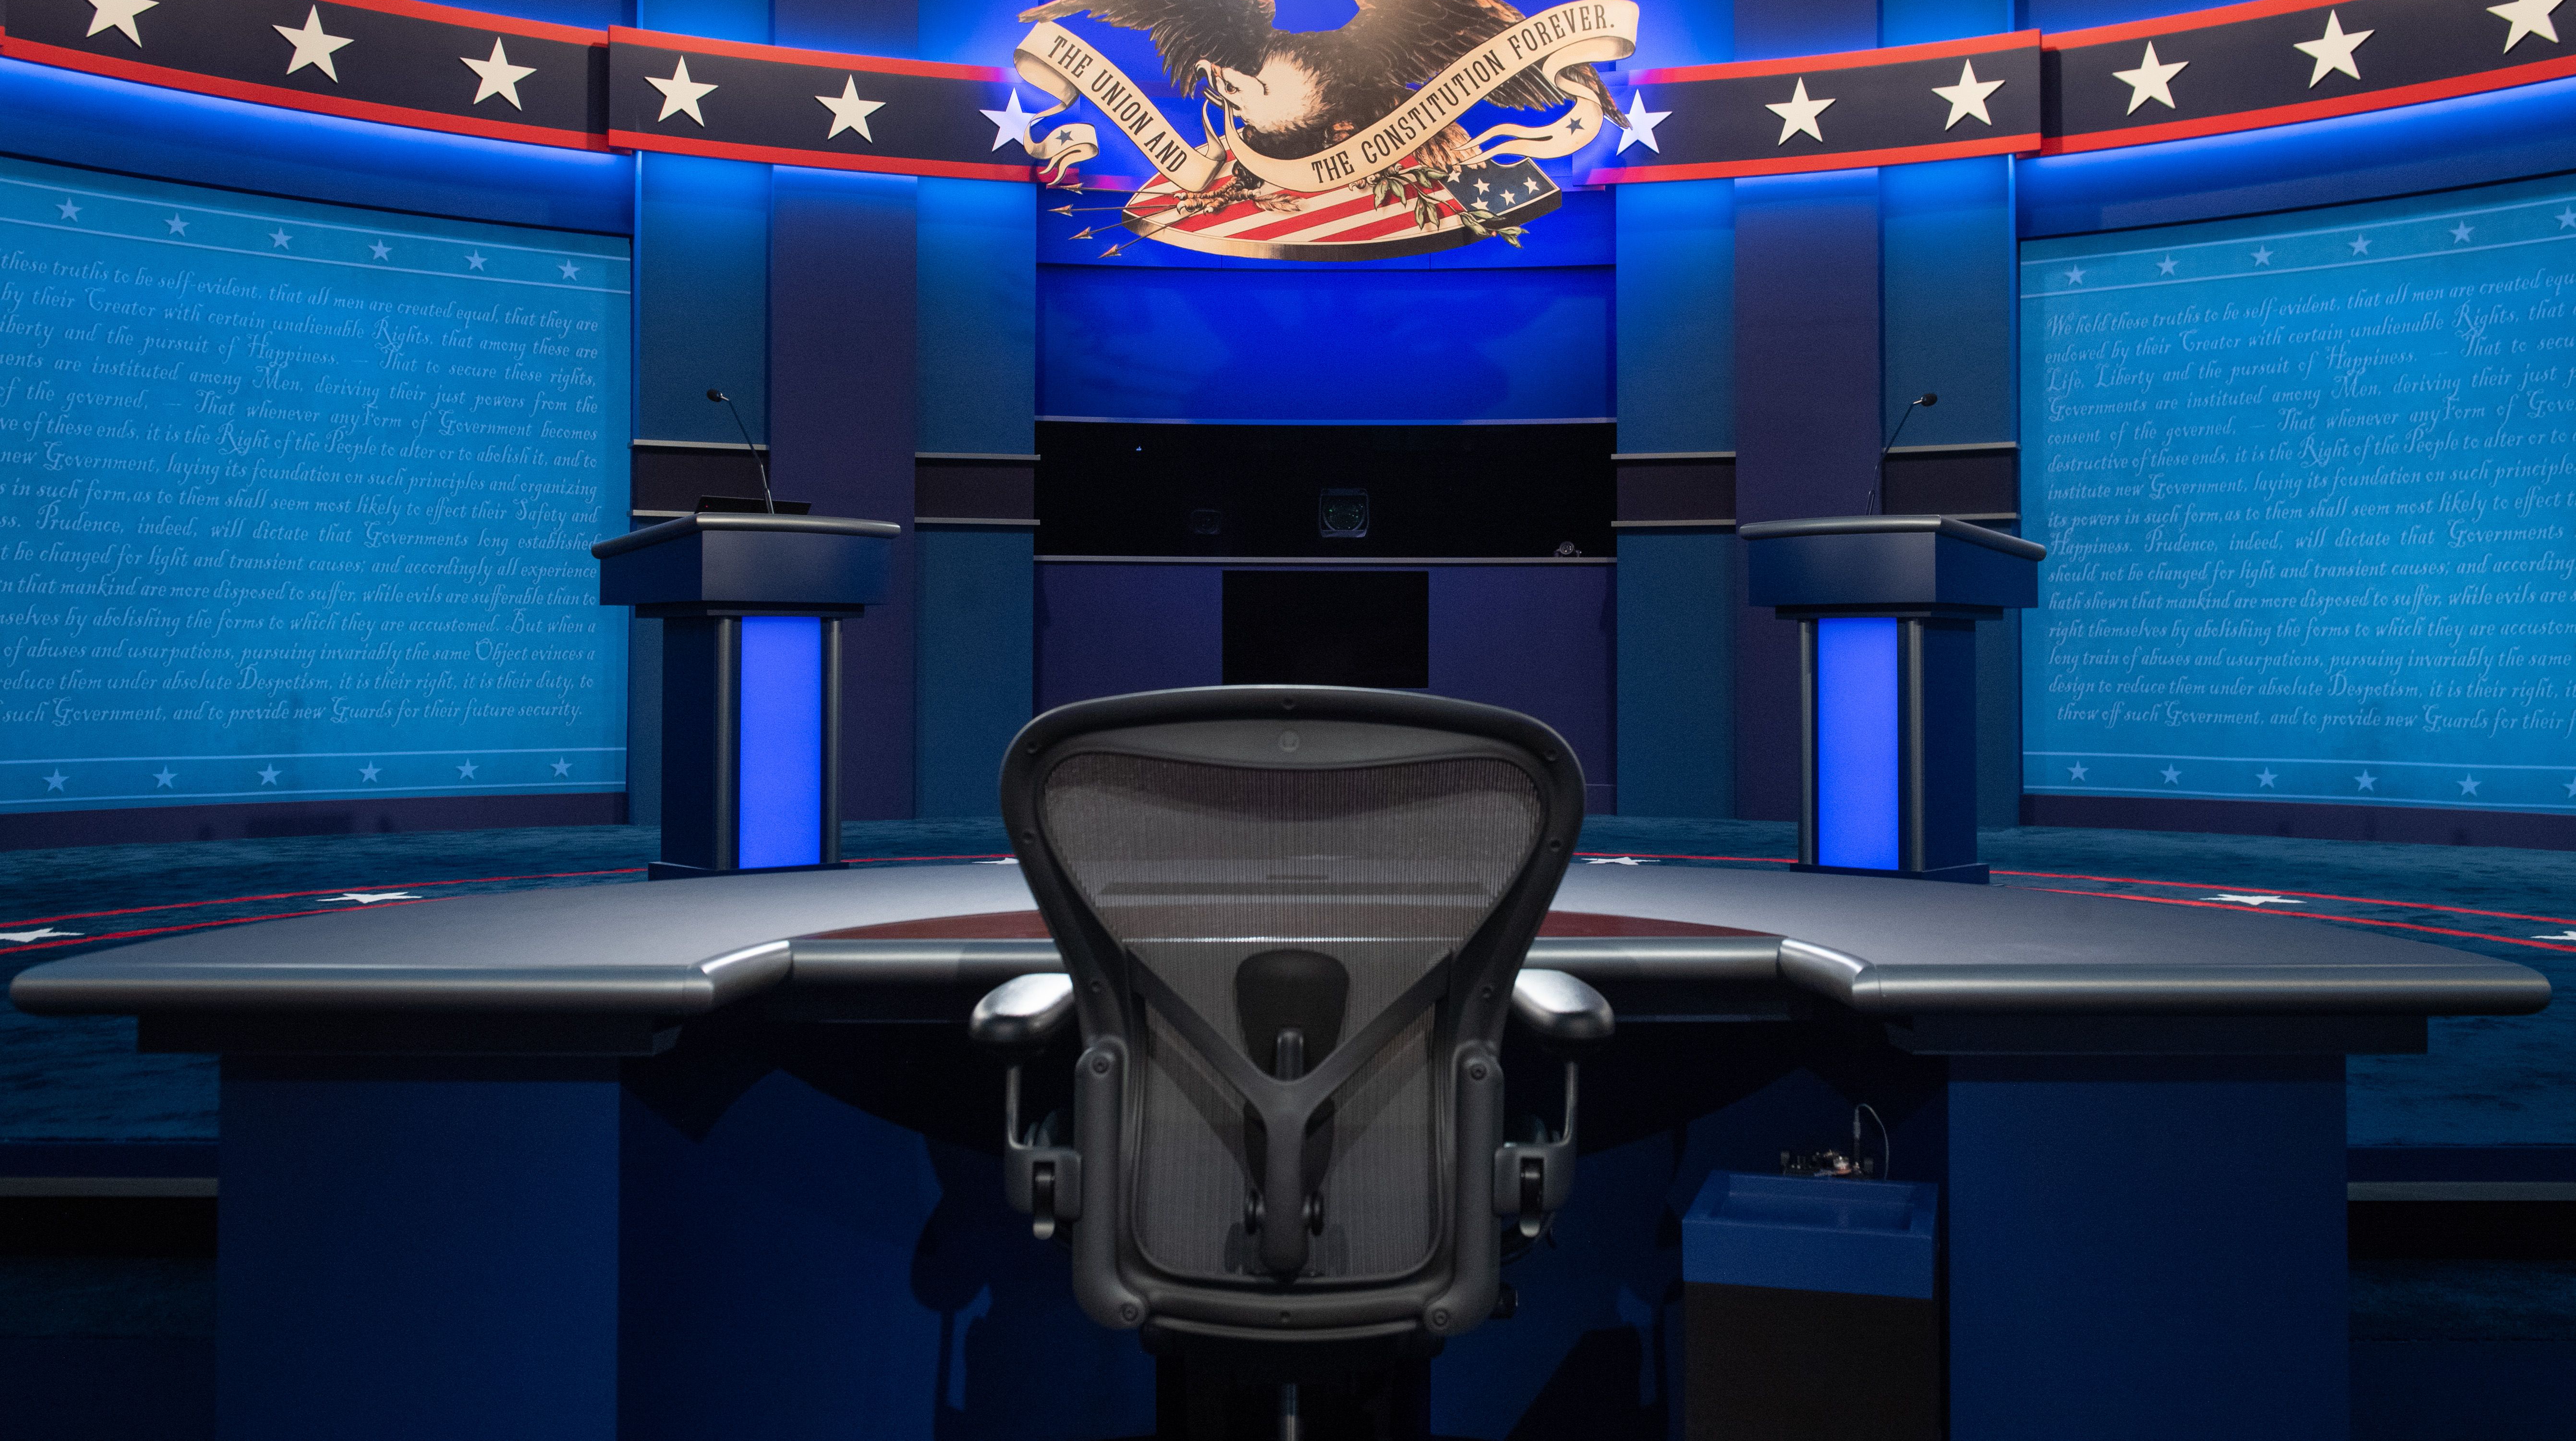 Policies, Persons, and Paths to Ruin: Pondering the Implications of the 2020 Election